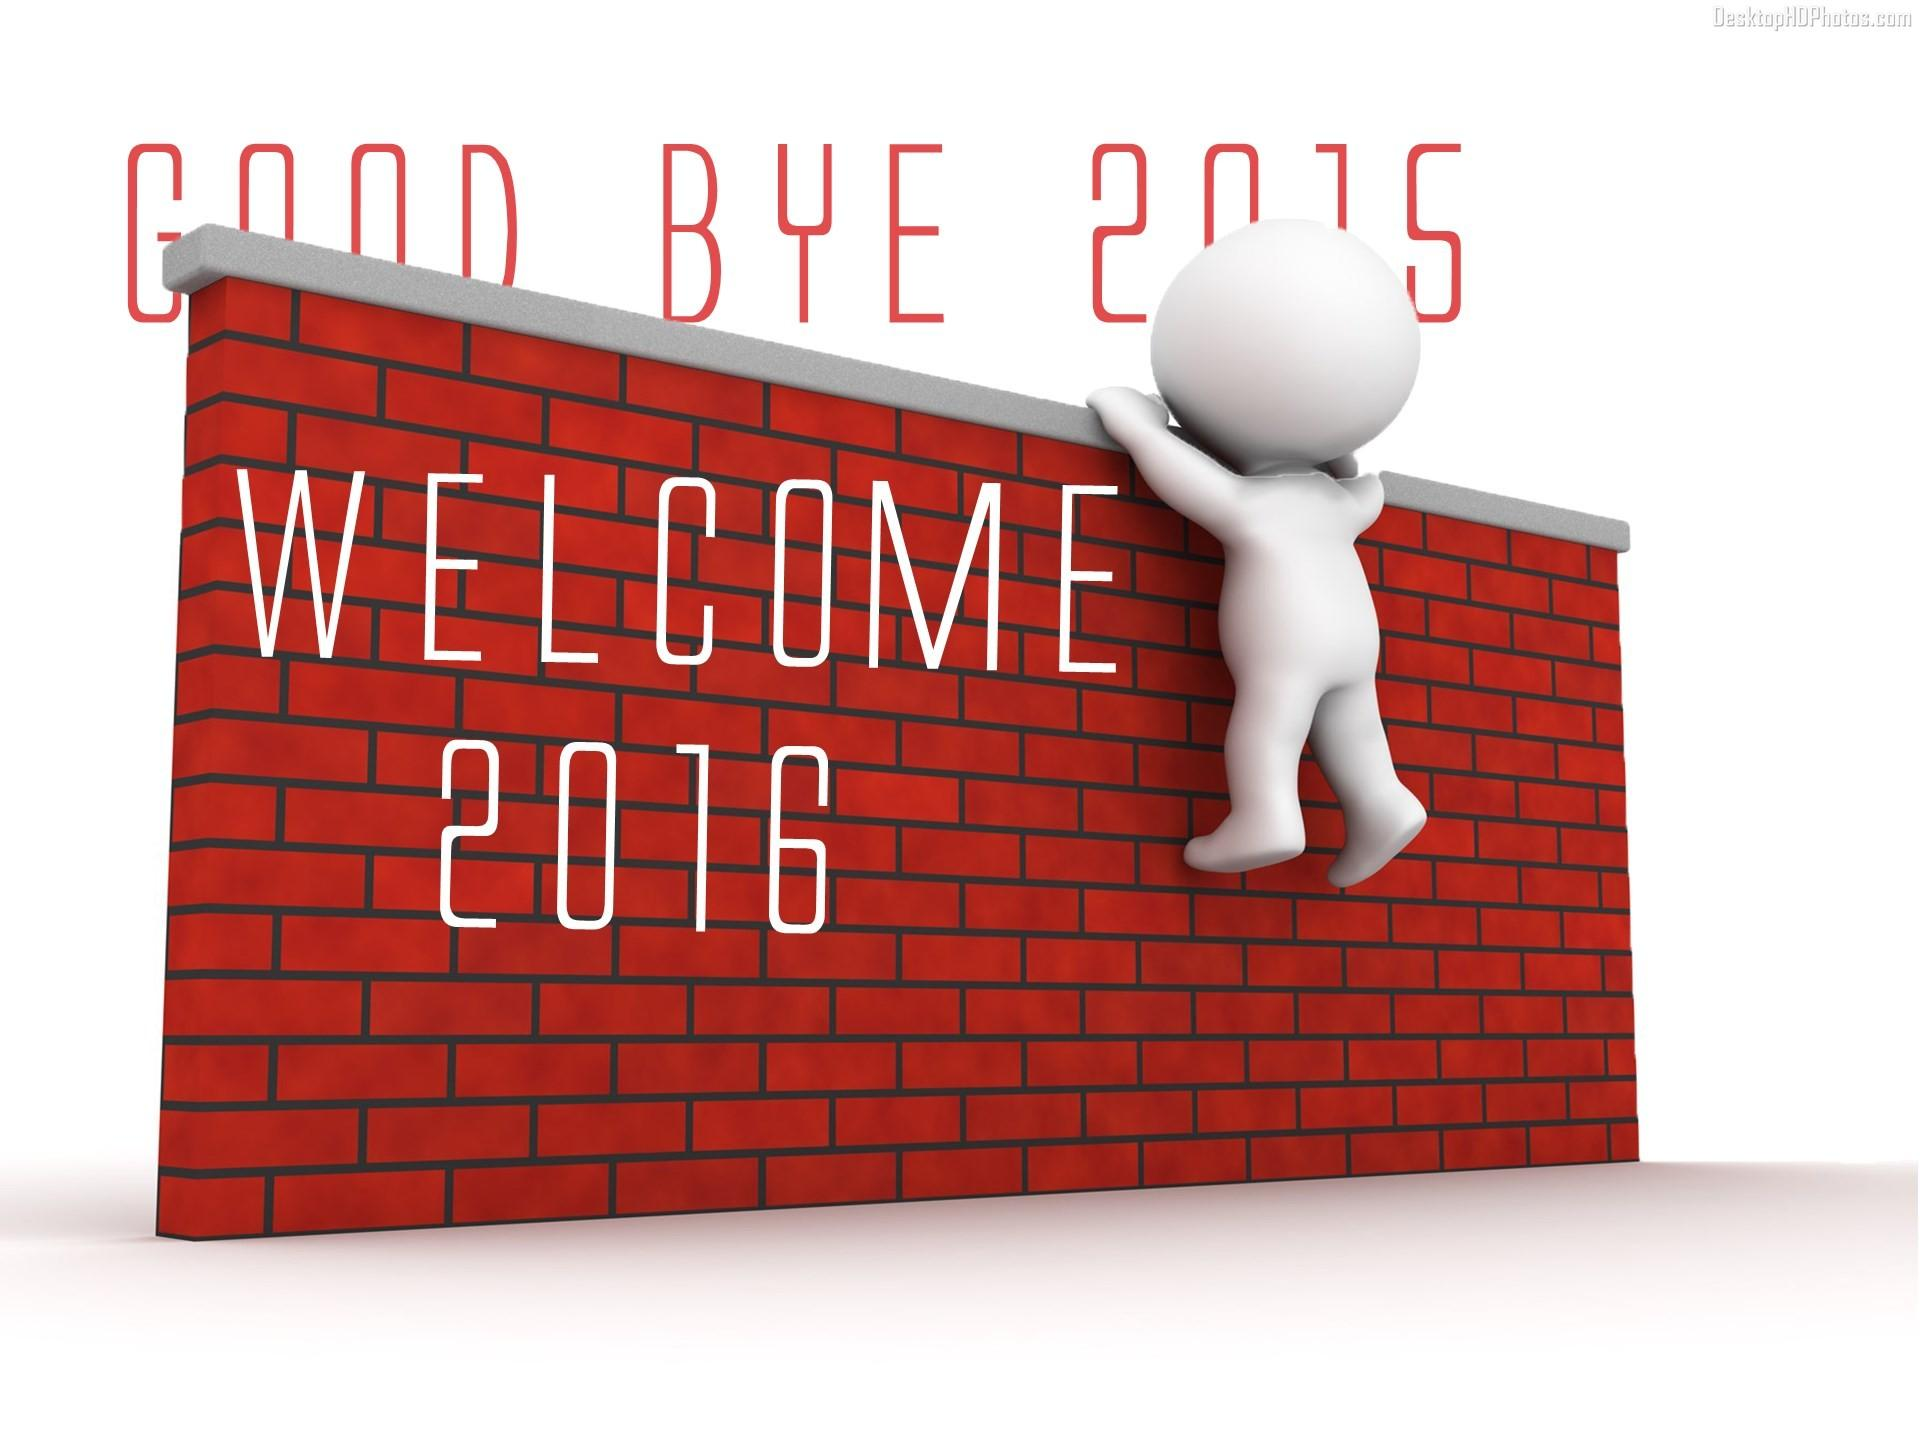 photos-of-goodbye-2015-and-welcome-2016